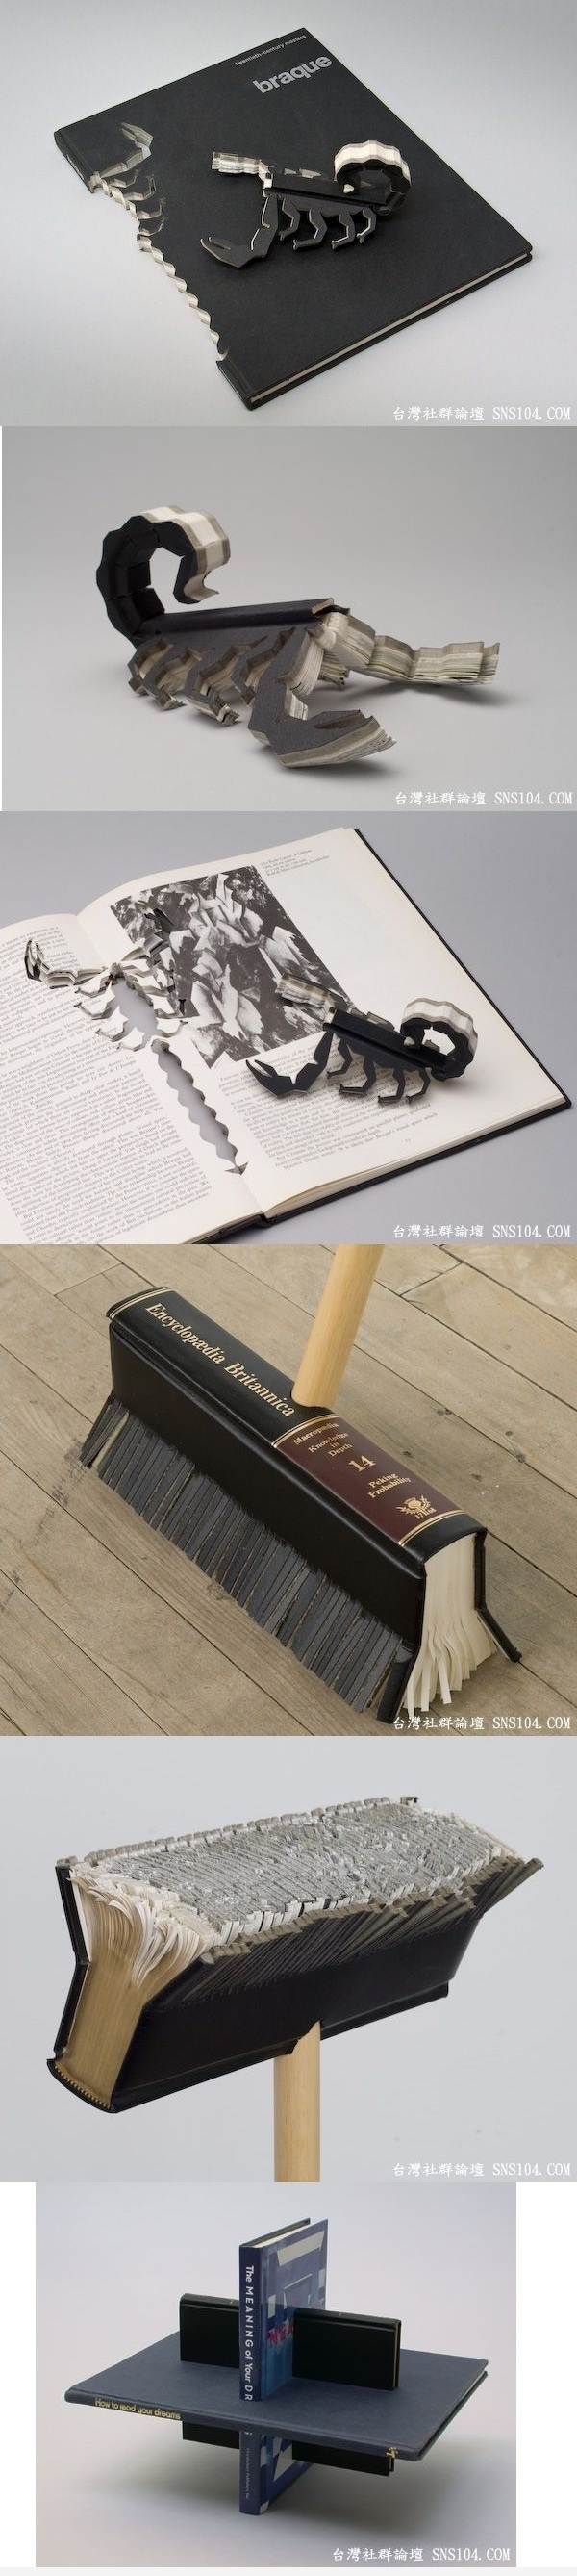 Sculptured Books